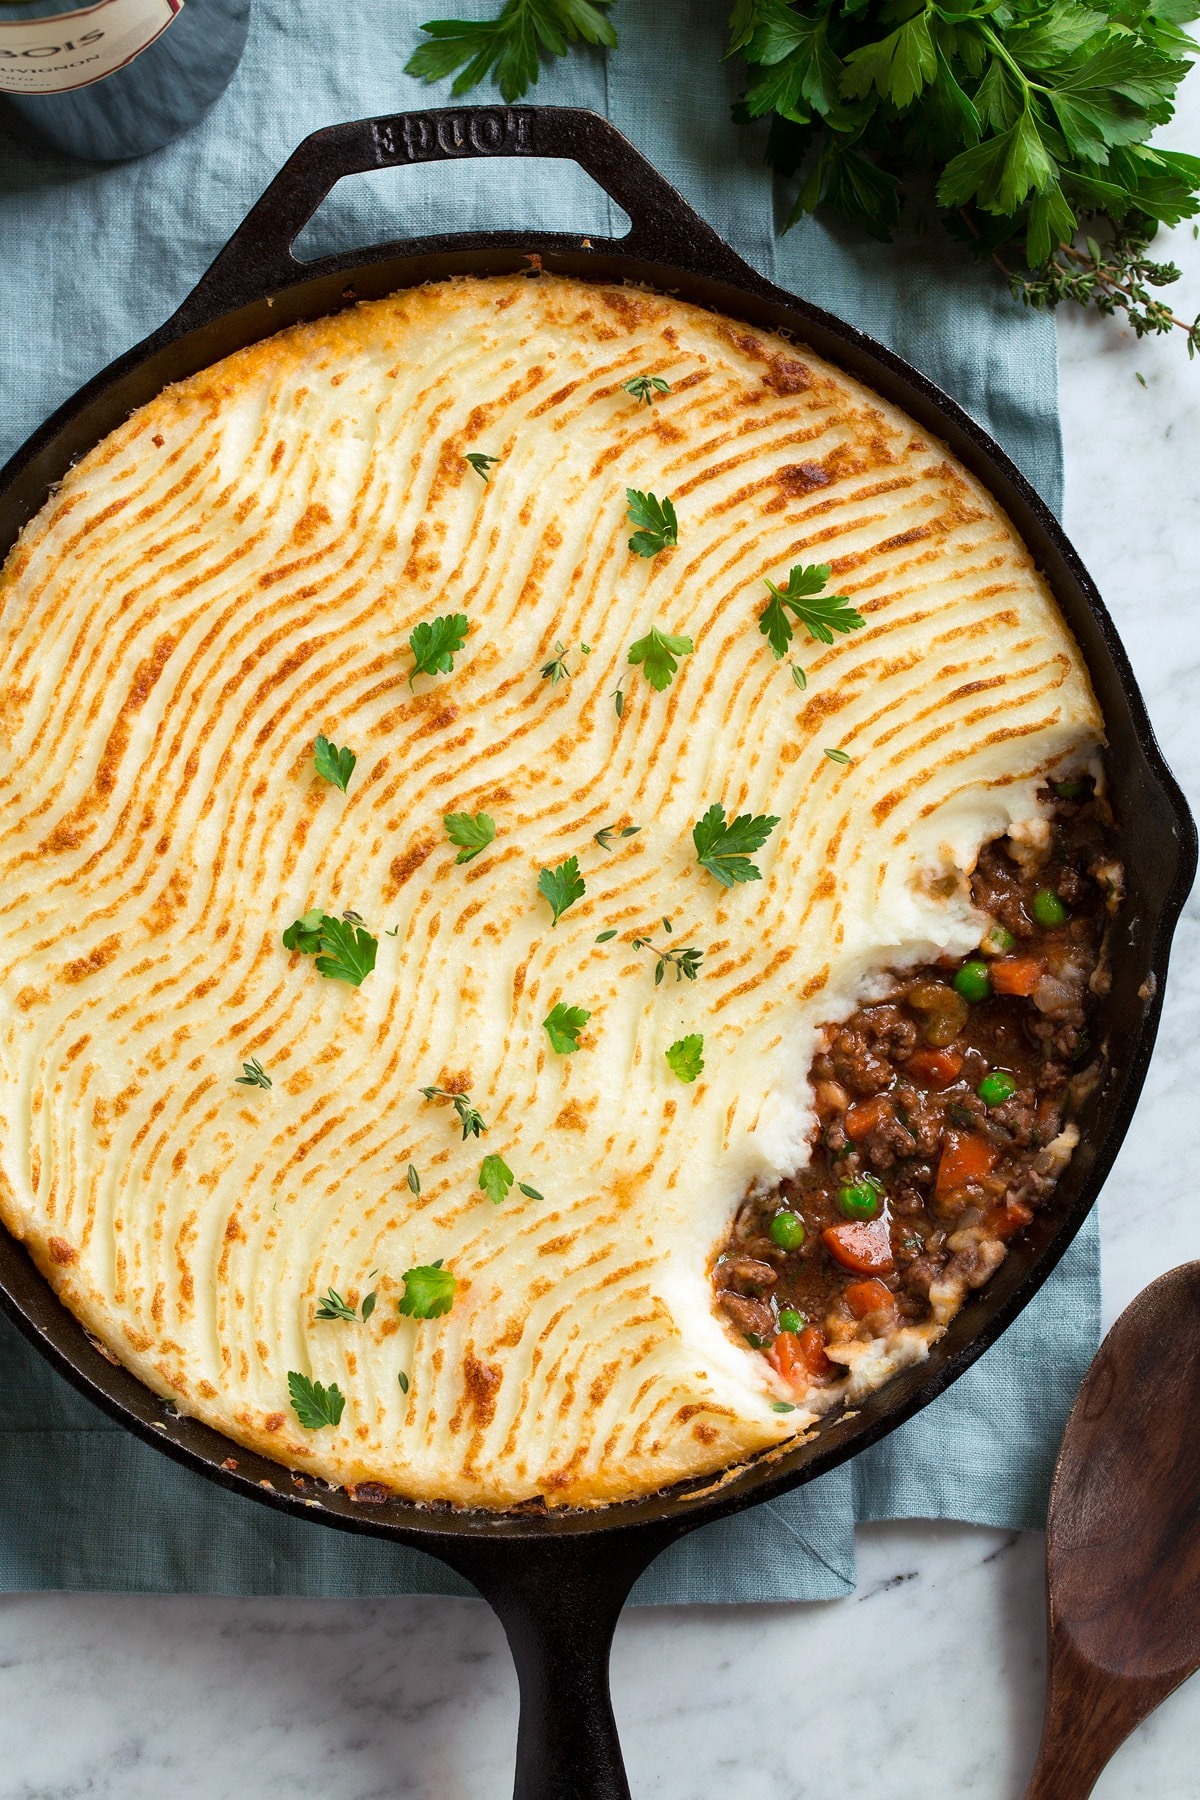 Overhead image of shepherd's pie in a cast iron skillet.